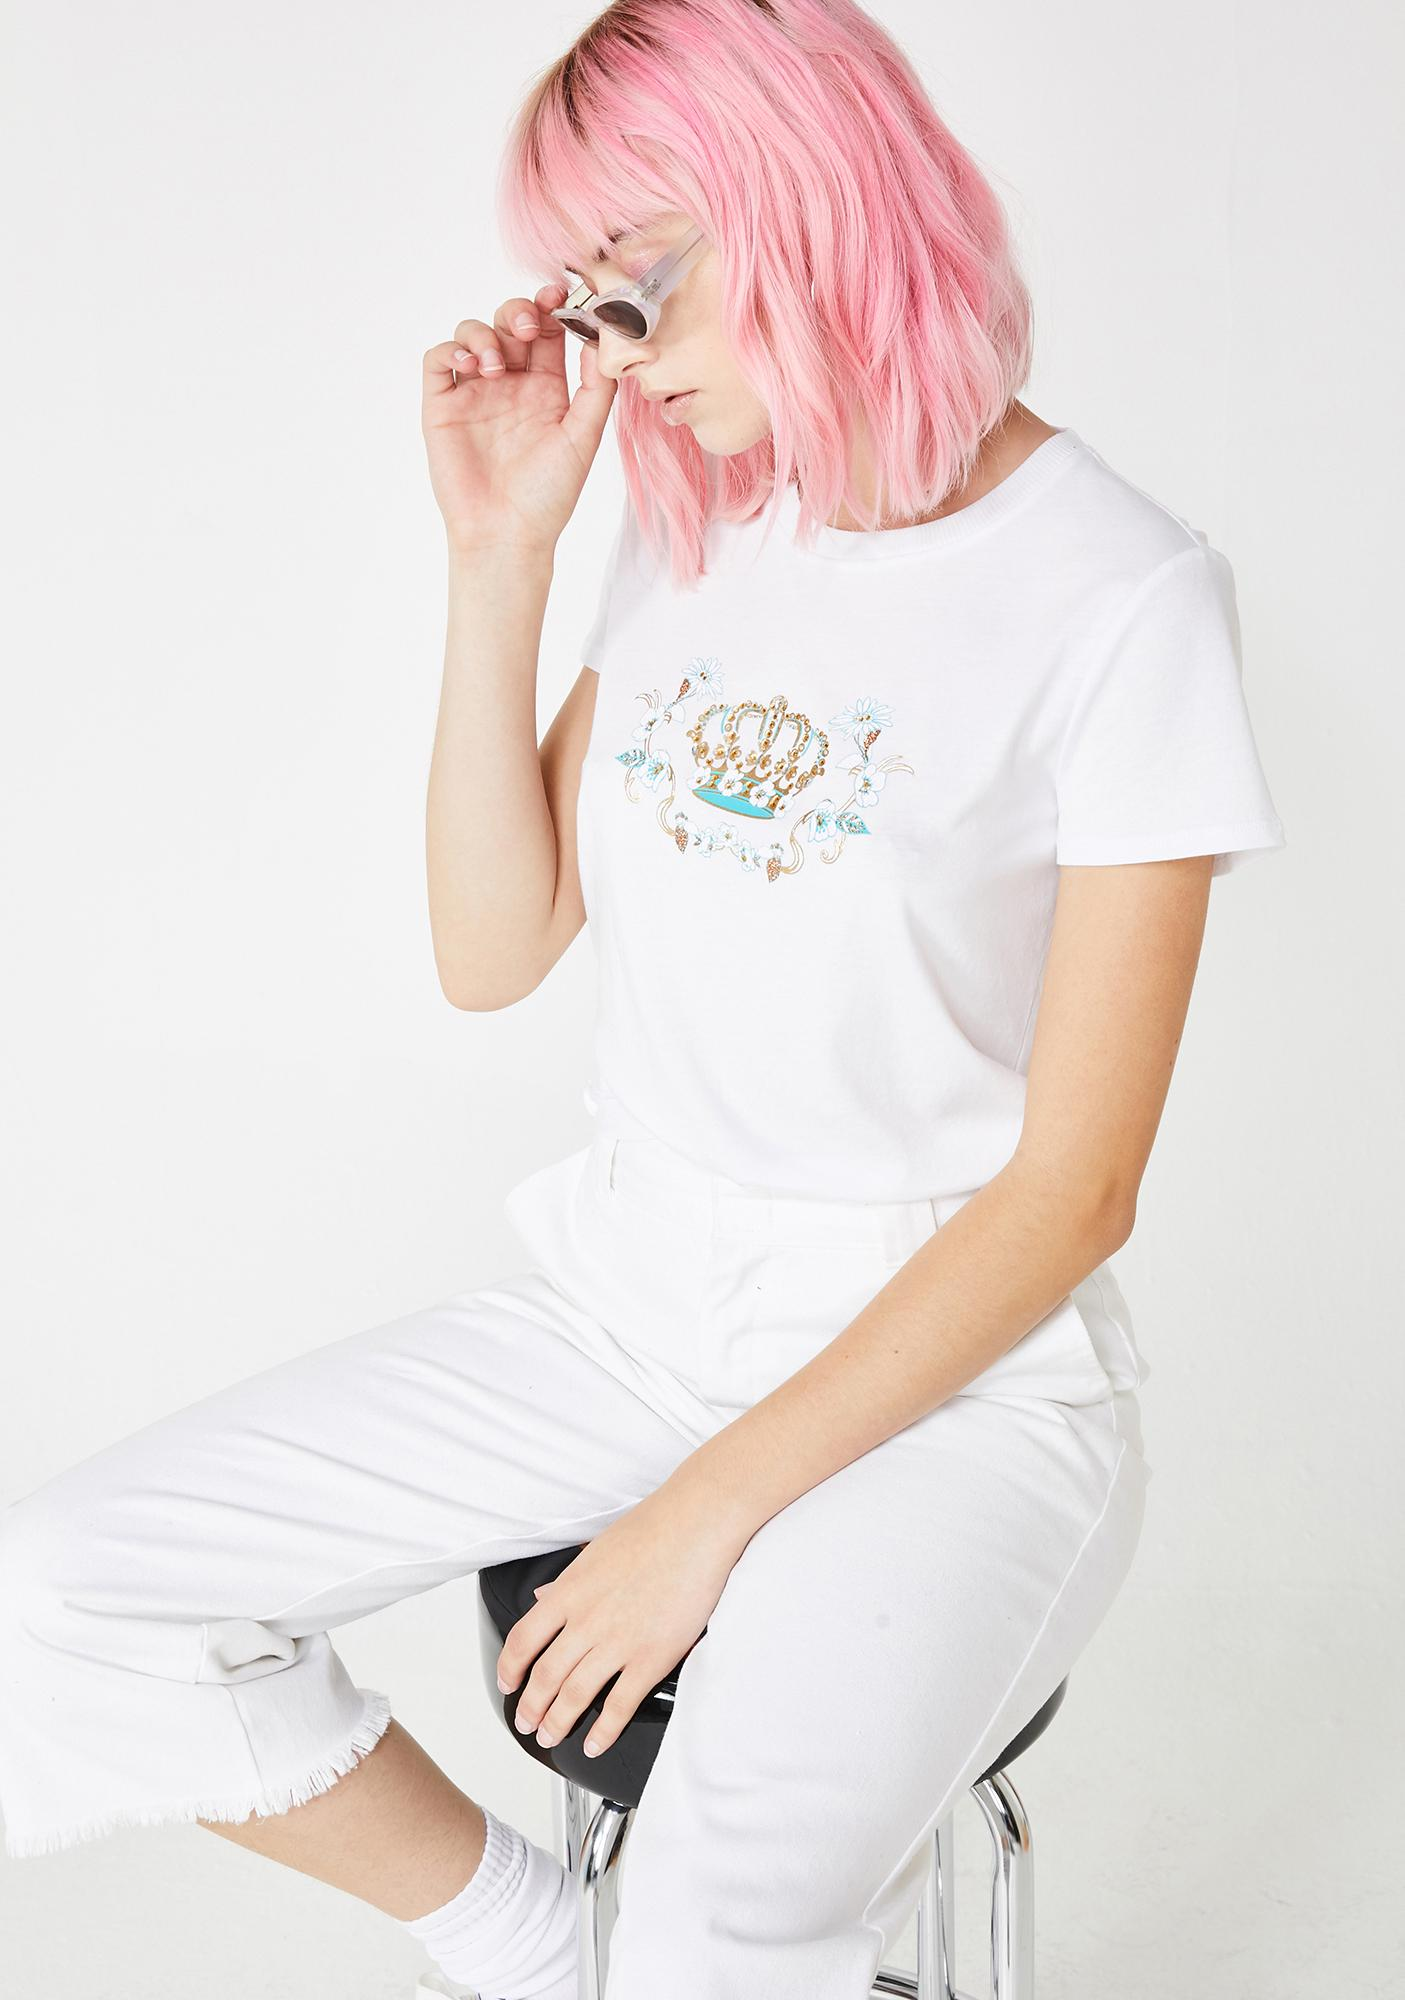 JUICY COUTURE Crowned Jewel Graphic Tee